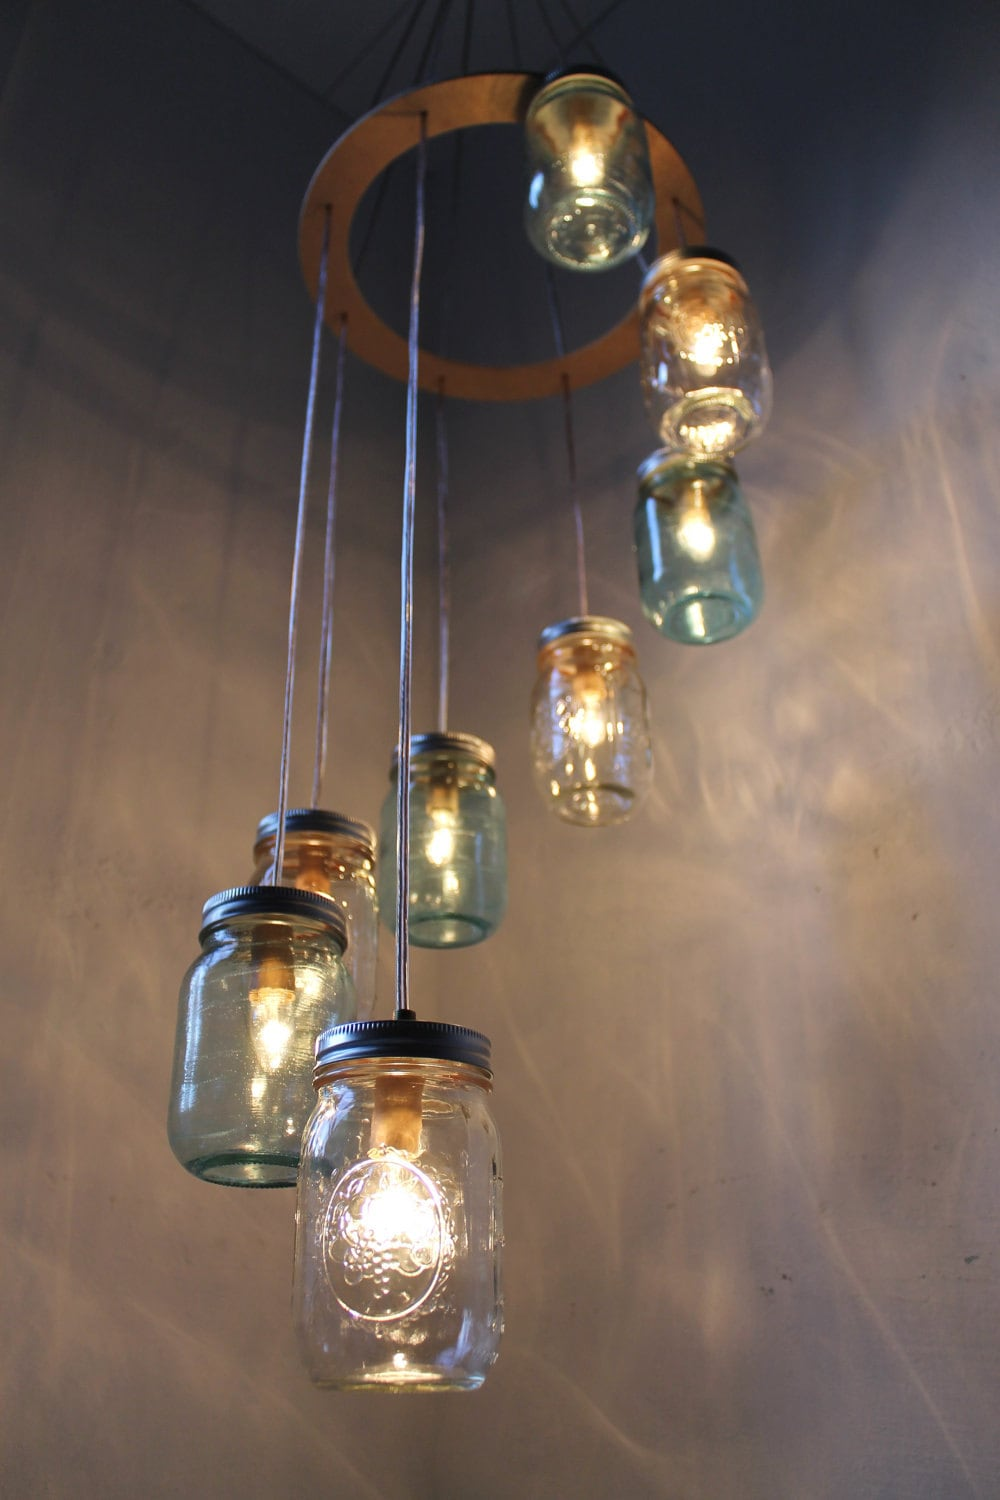 Mason Jar Lights Christmas Lights Interiors Inside Ideas Interiors design about Everything [magnanprojects.com]